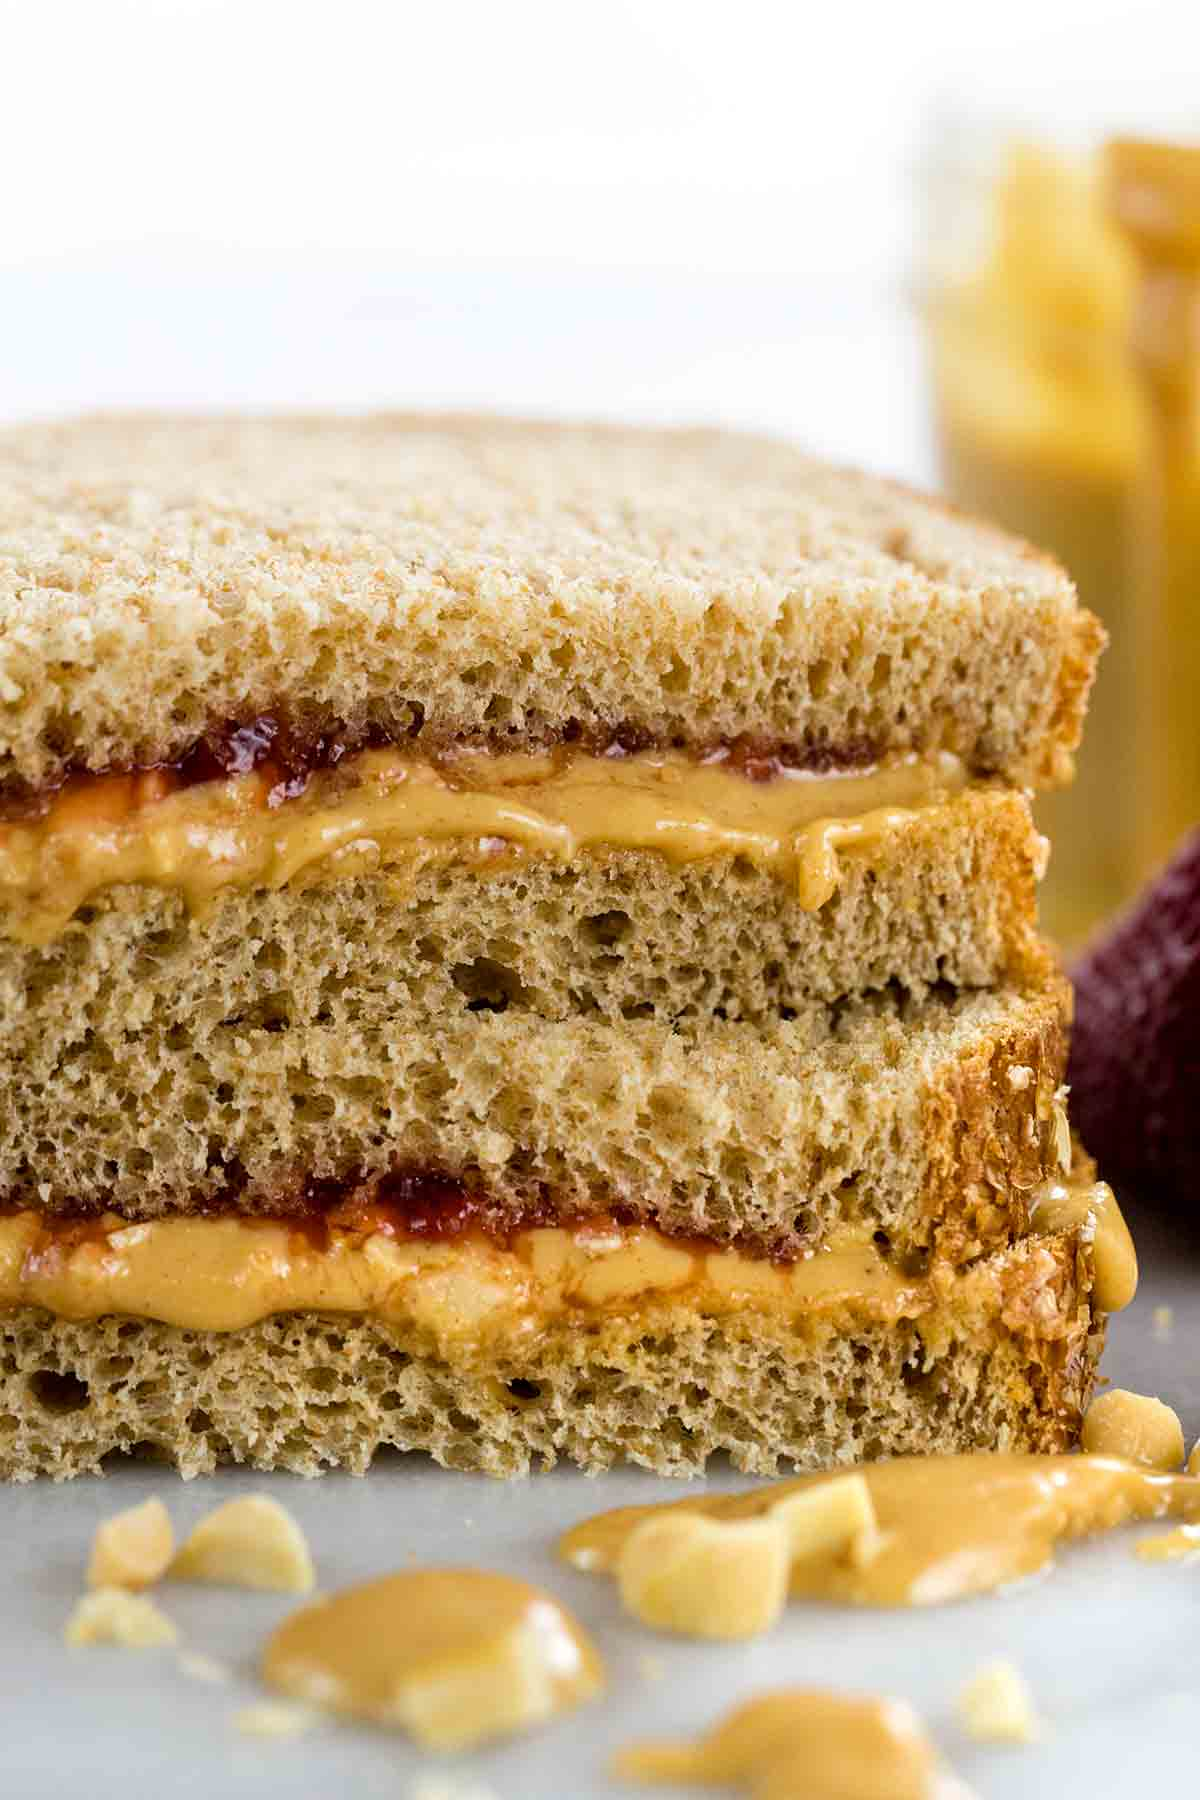 Stack of peanut butter and jelly sandwiches